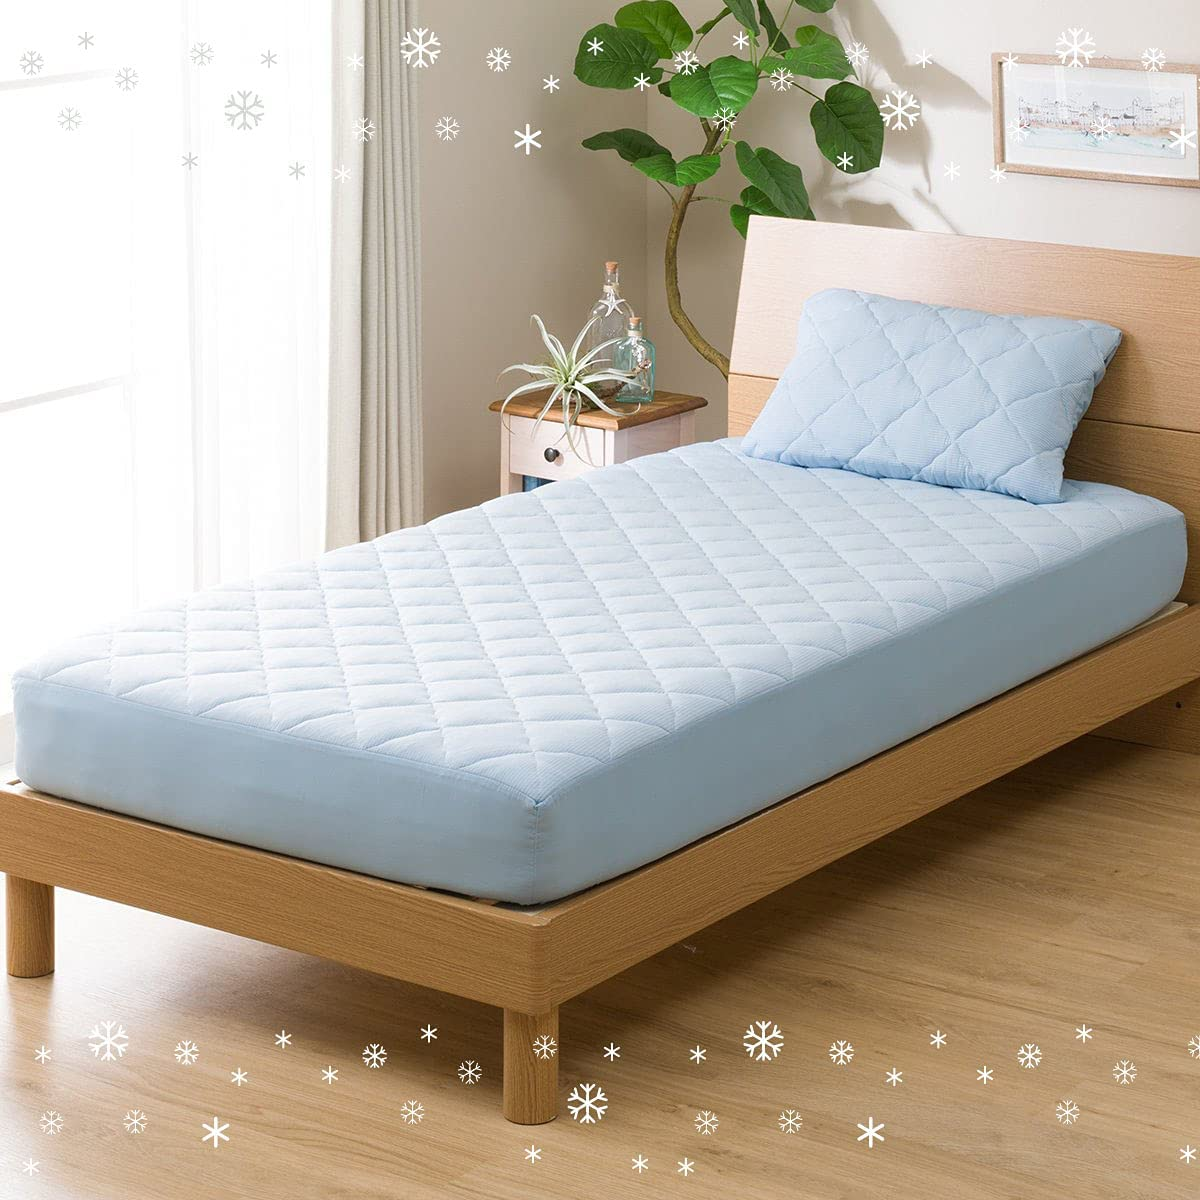 Aki-Home 67% OFF of fixed price Cooling Fitted Max 72% OFF Mattress Pad Spandex N-Cool Cool-to-Th